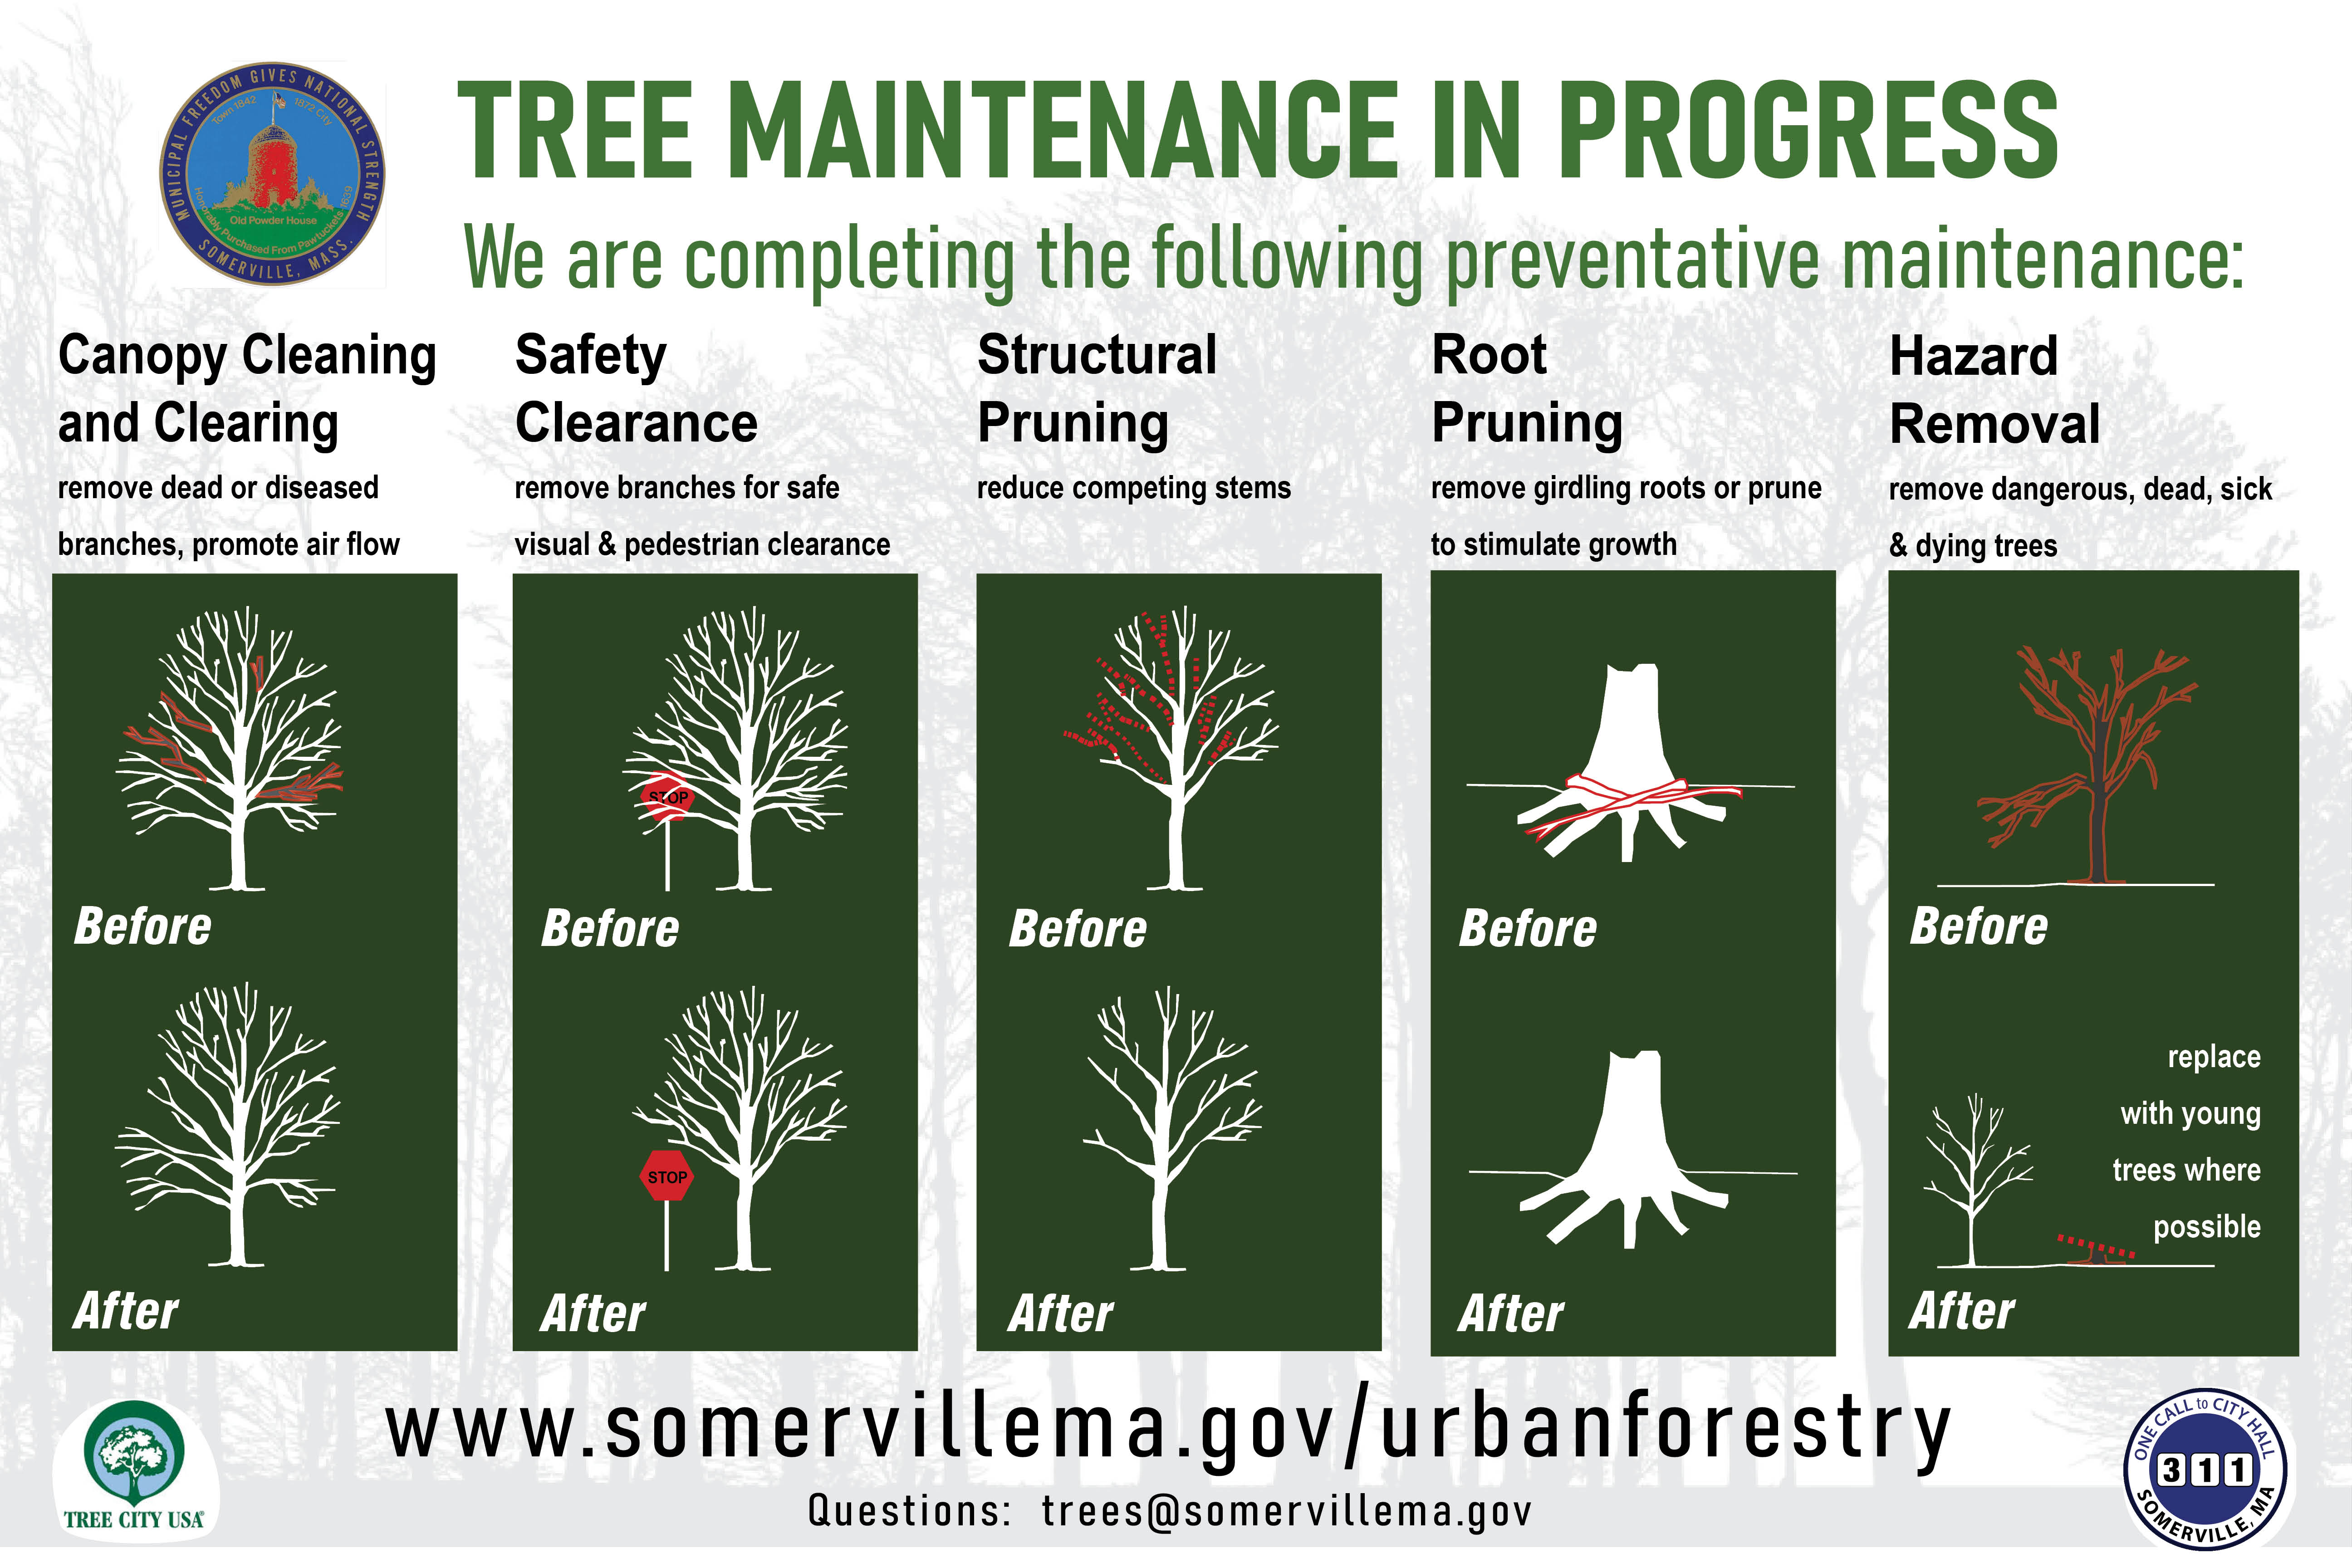 Tree maintenance in progress: canopy cleaning, safety clearance, structural pruning, root pruning, hazard removal